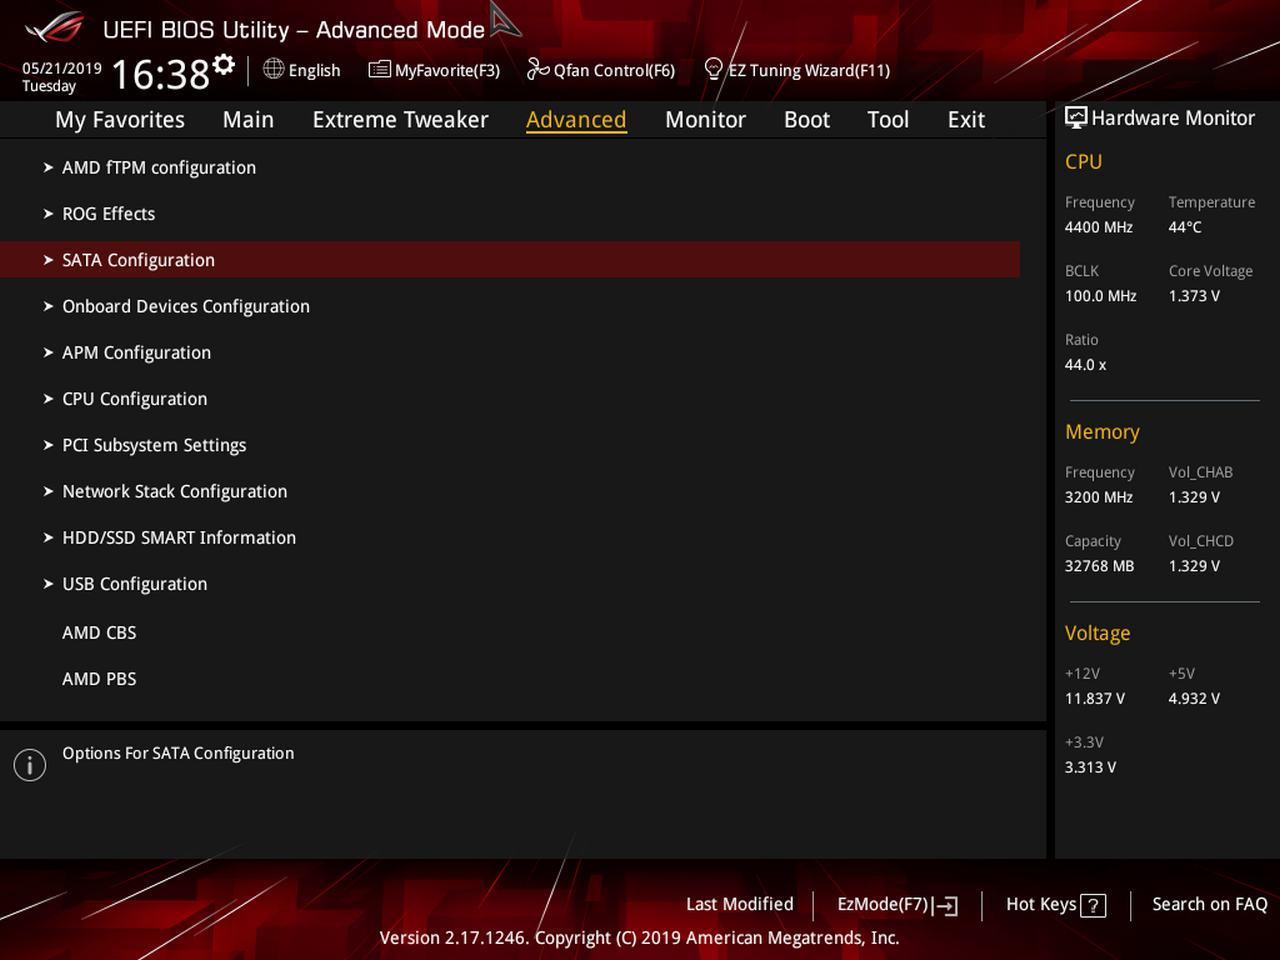 AMD NVMe RAID Explained and Tested! - Page 2 of 3 - PC Tech